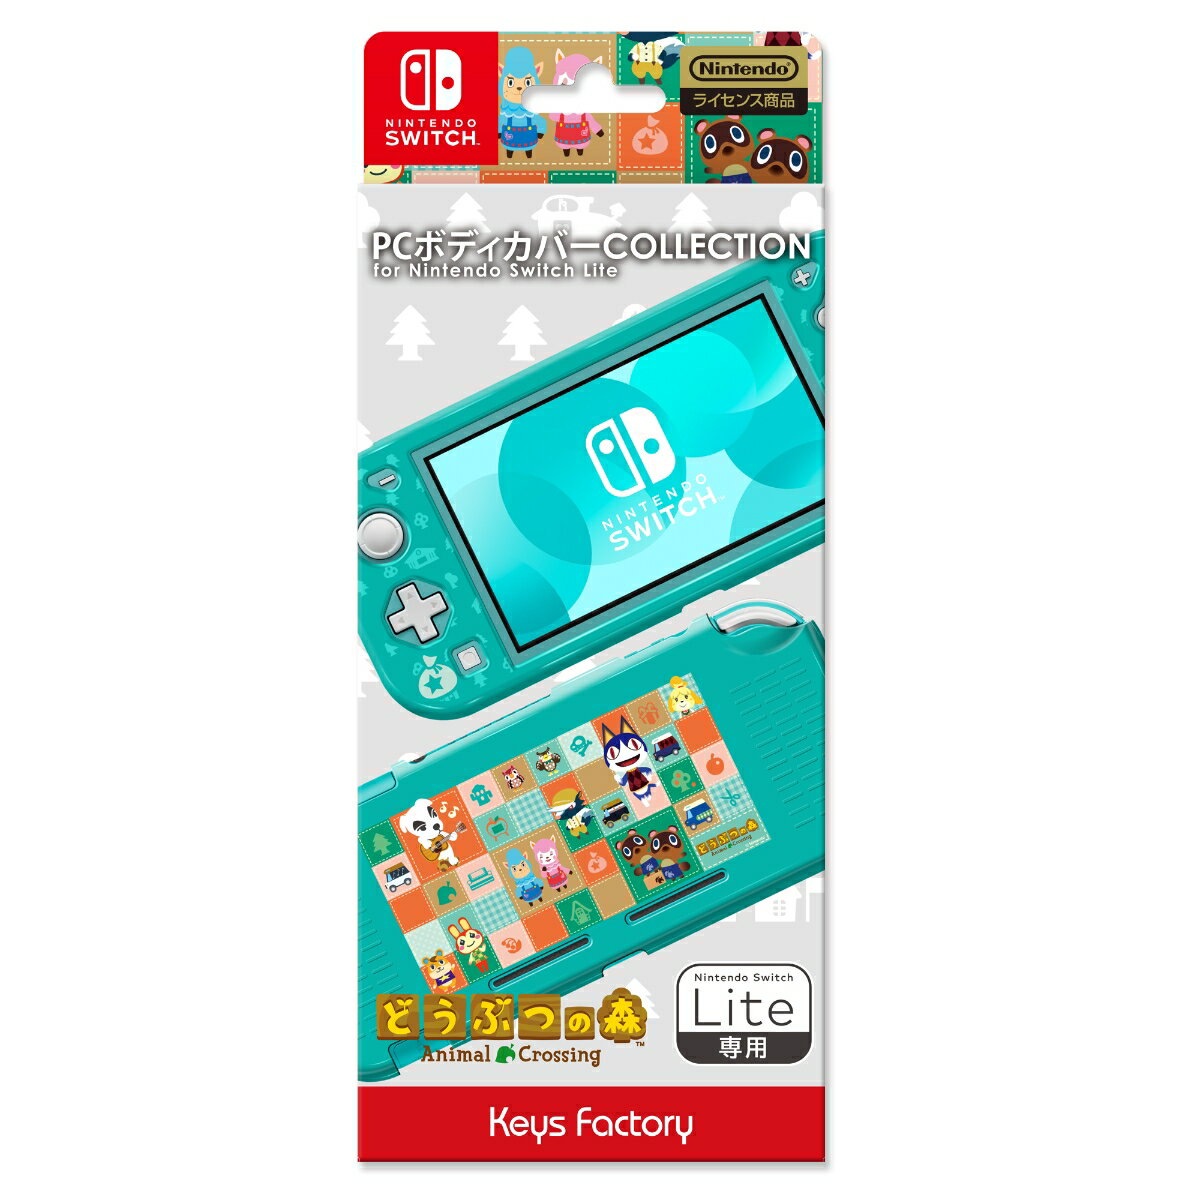 PC BODY COVER COLLECTION for Nintendo Switch Lite どうぶつの森